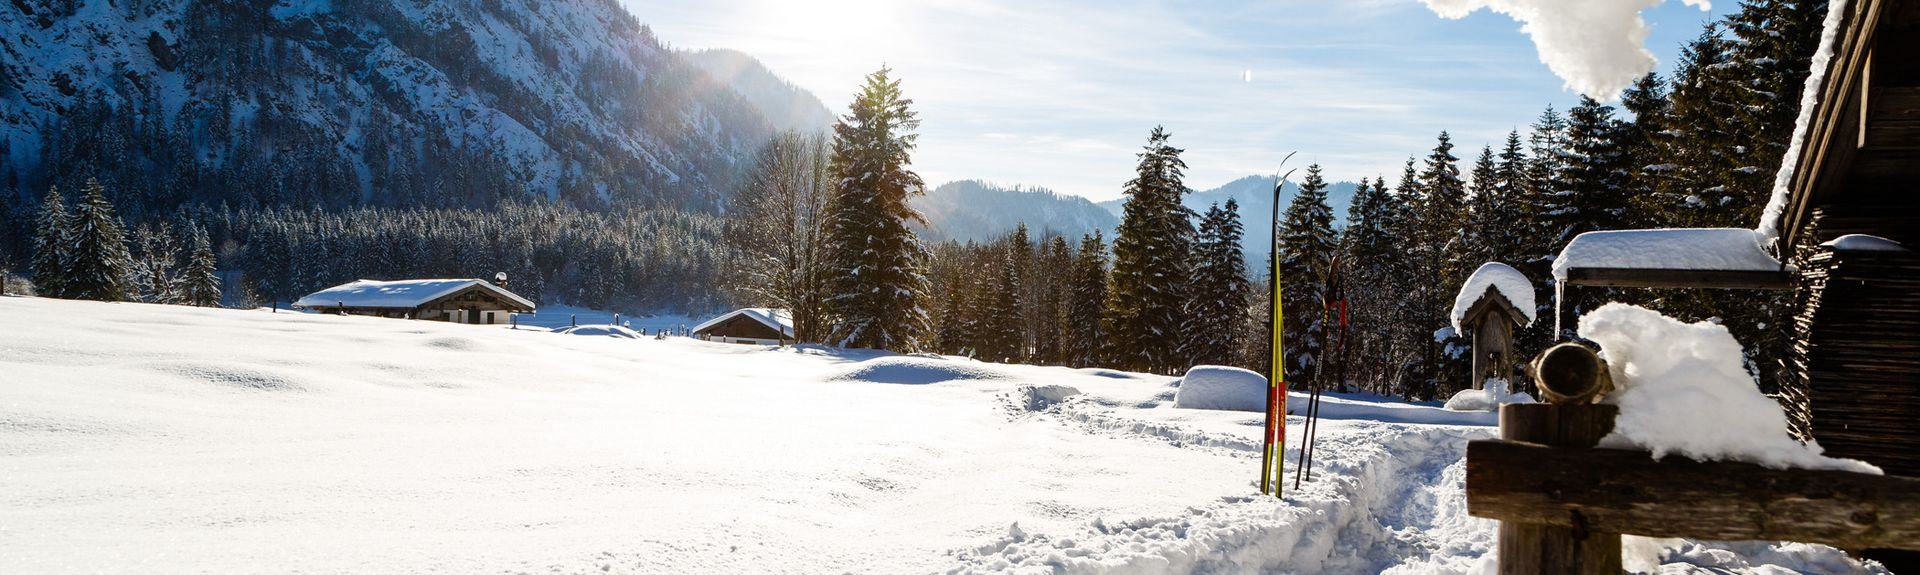 Inzell, Germany